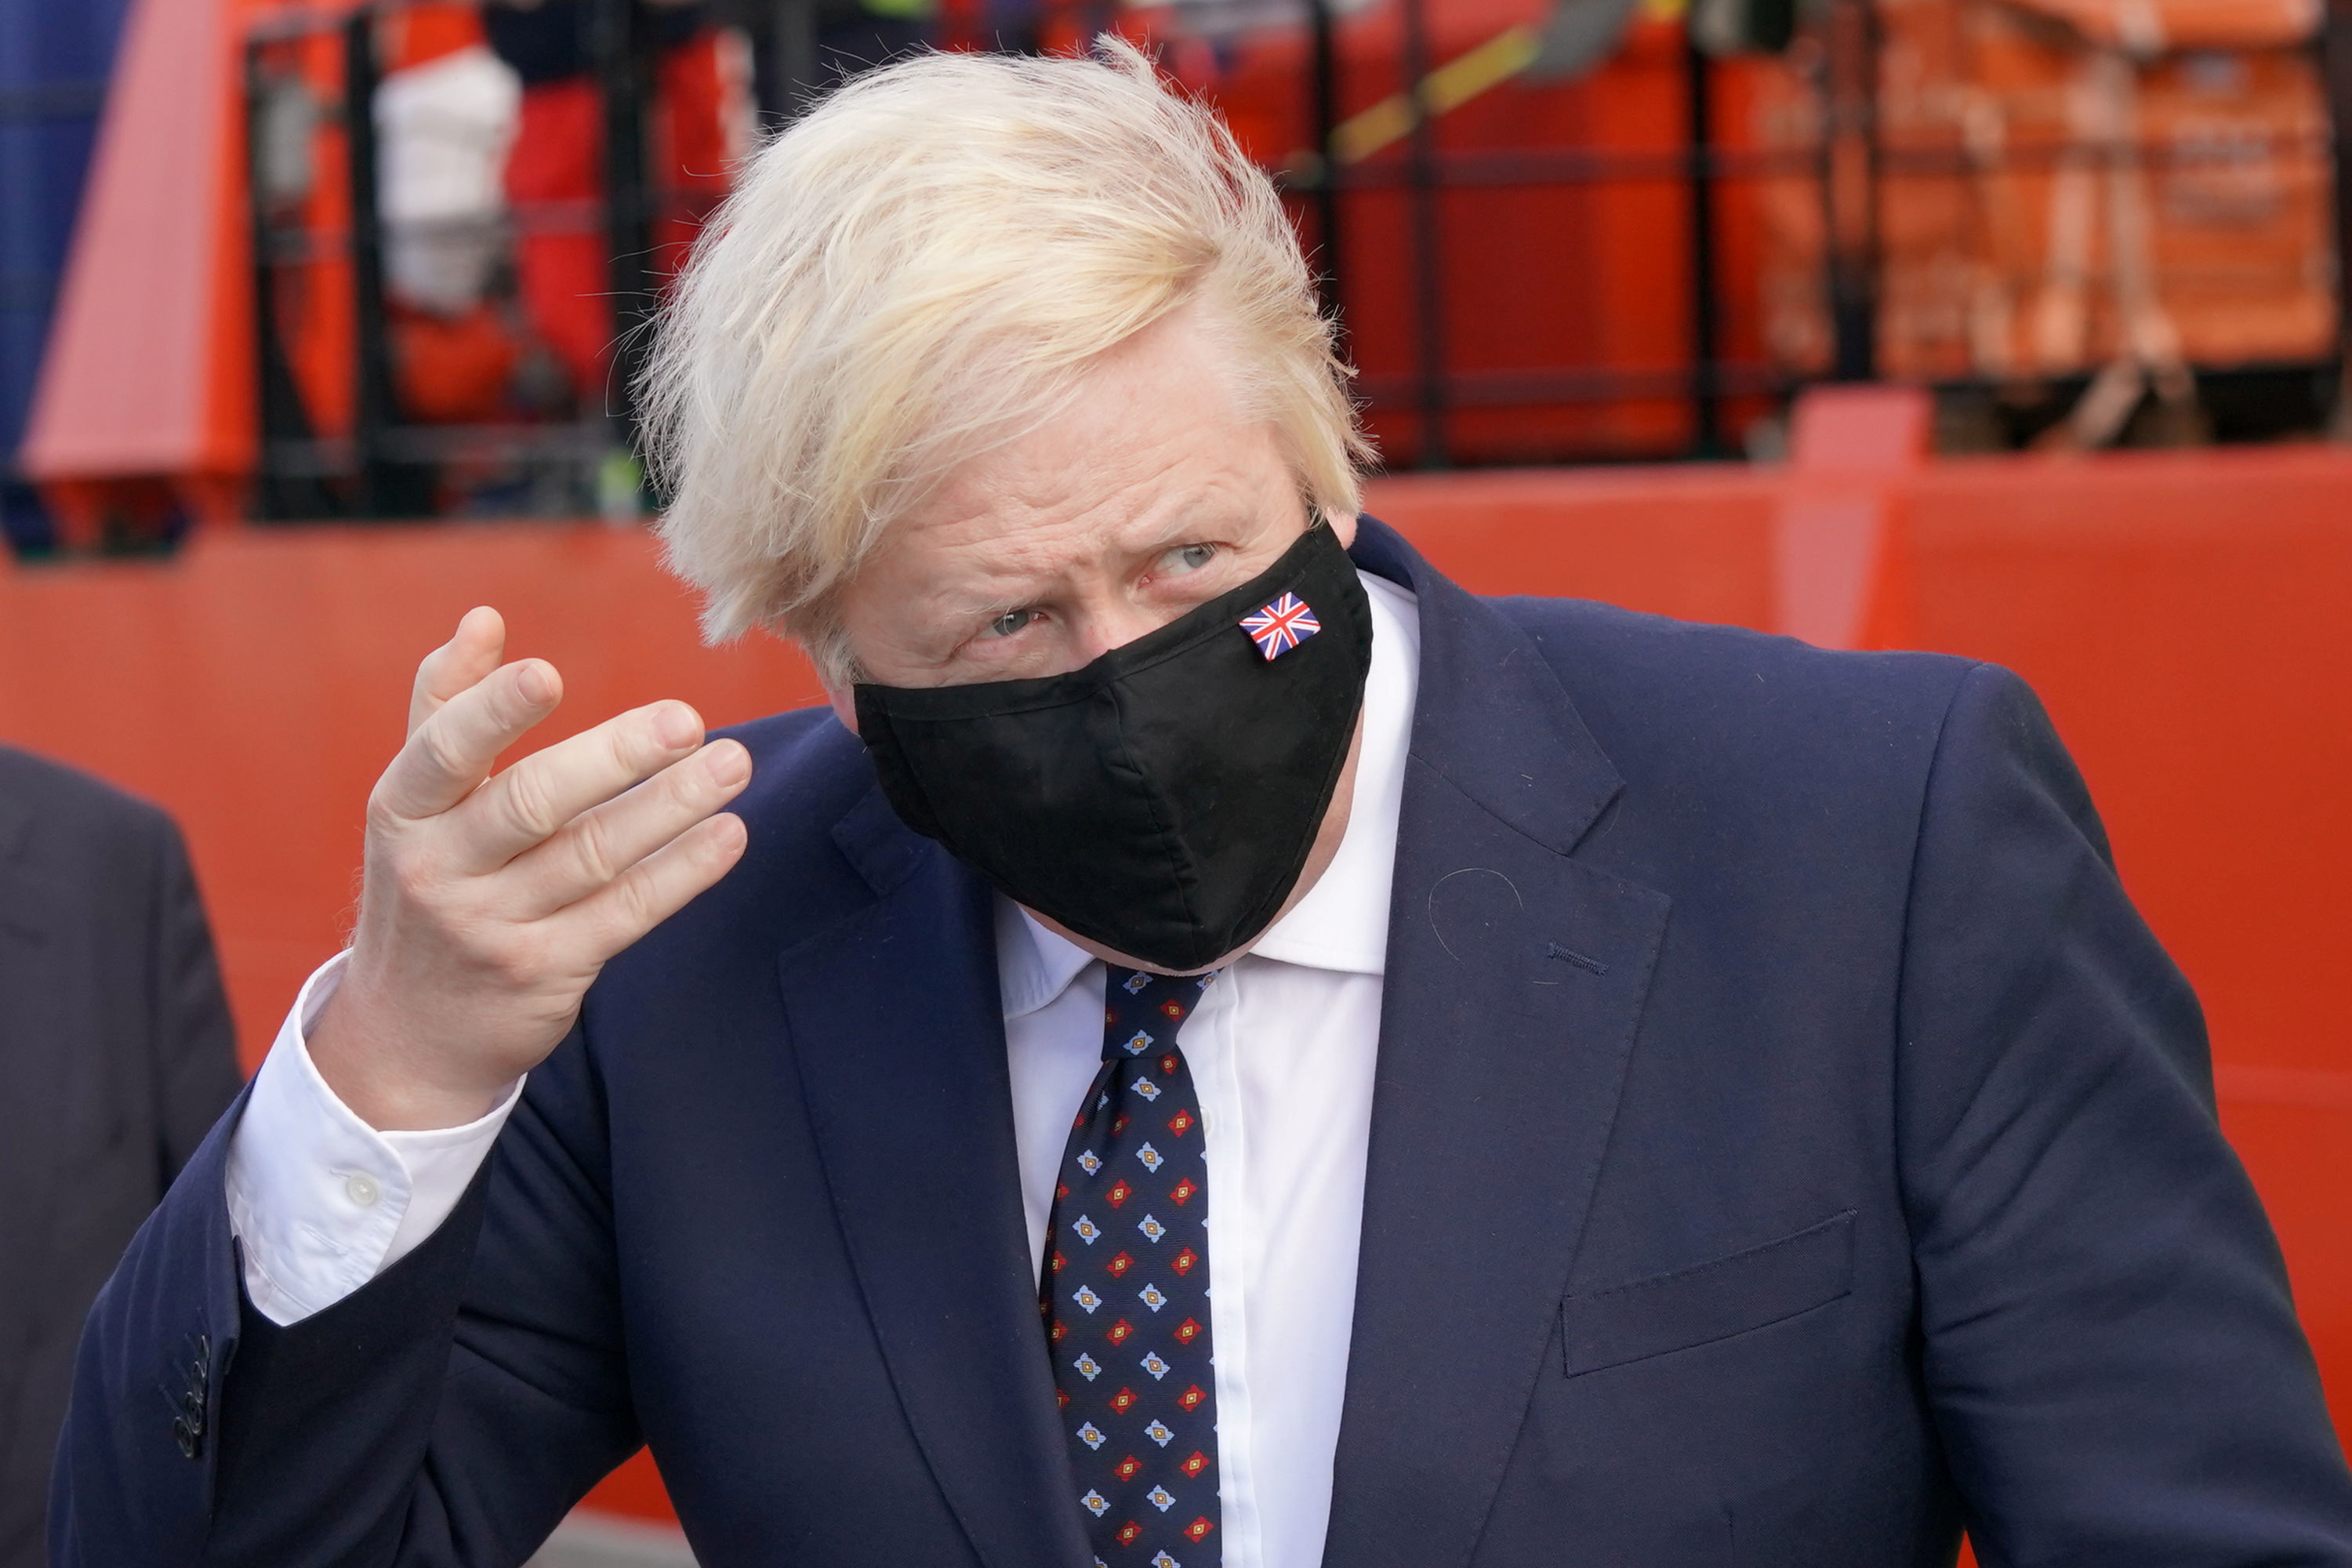 Britain's Prime Minister Boris Johnson gestures before boarding the vessel Alba in Fraserburgh Harbour, which will transport him to the Moray Offshore Windfarm East during his visit to Scotland, Britain August 5, 2021. Jane Barlow/Pool via REUTERS